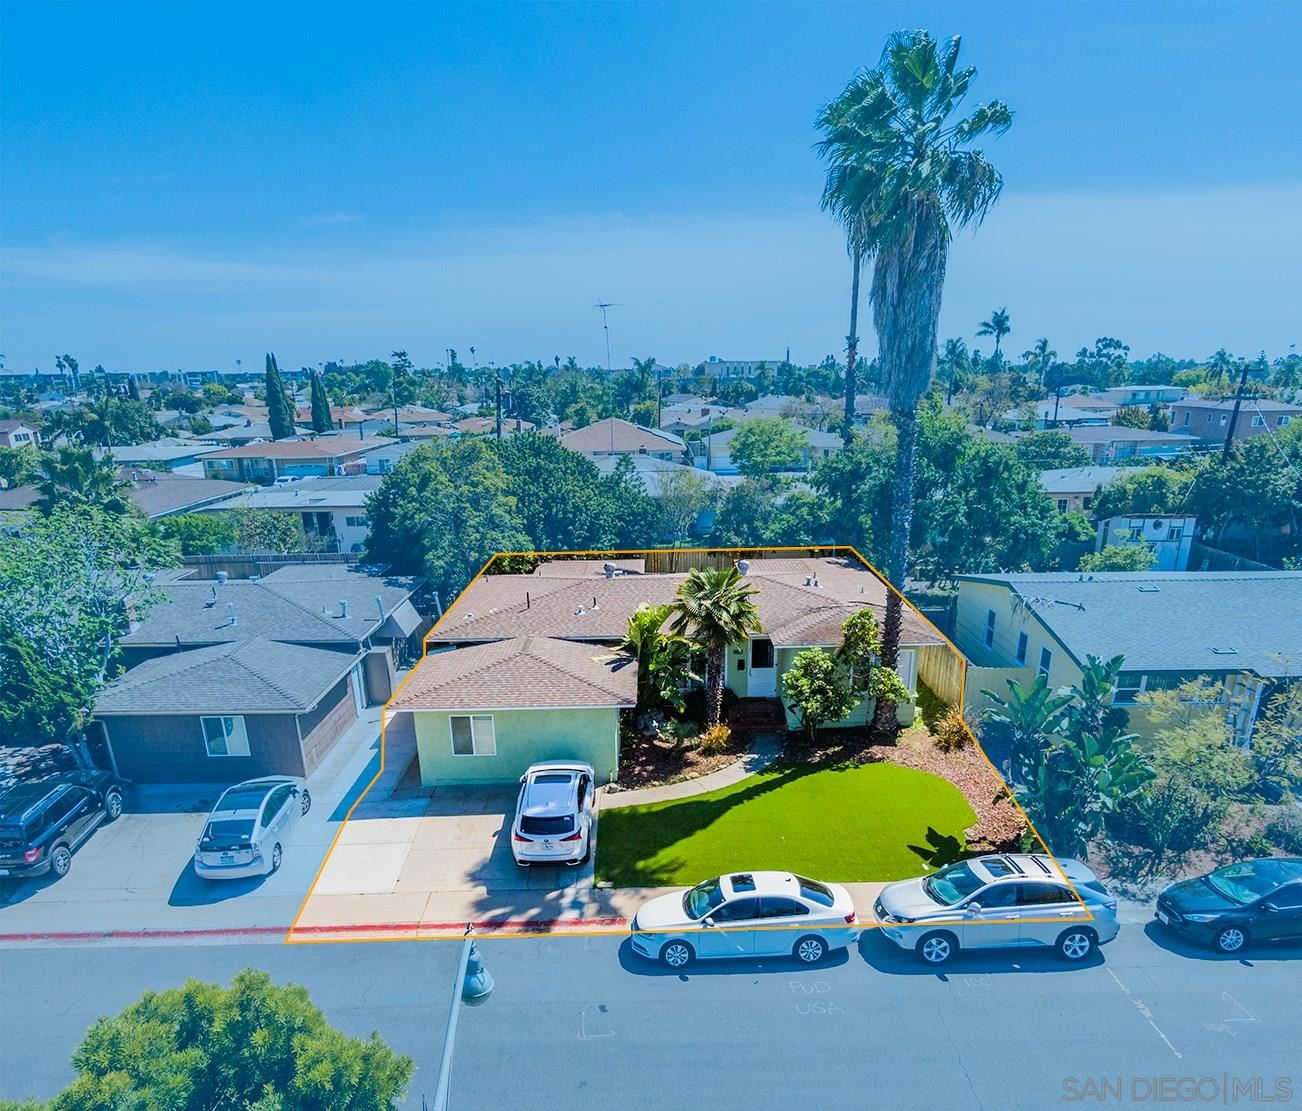 Photo for 6233-35 Mary Lane Dr, San Diego, CA 92115 (MLS # 210010065)